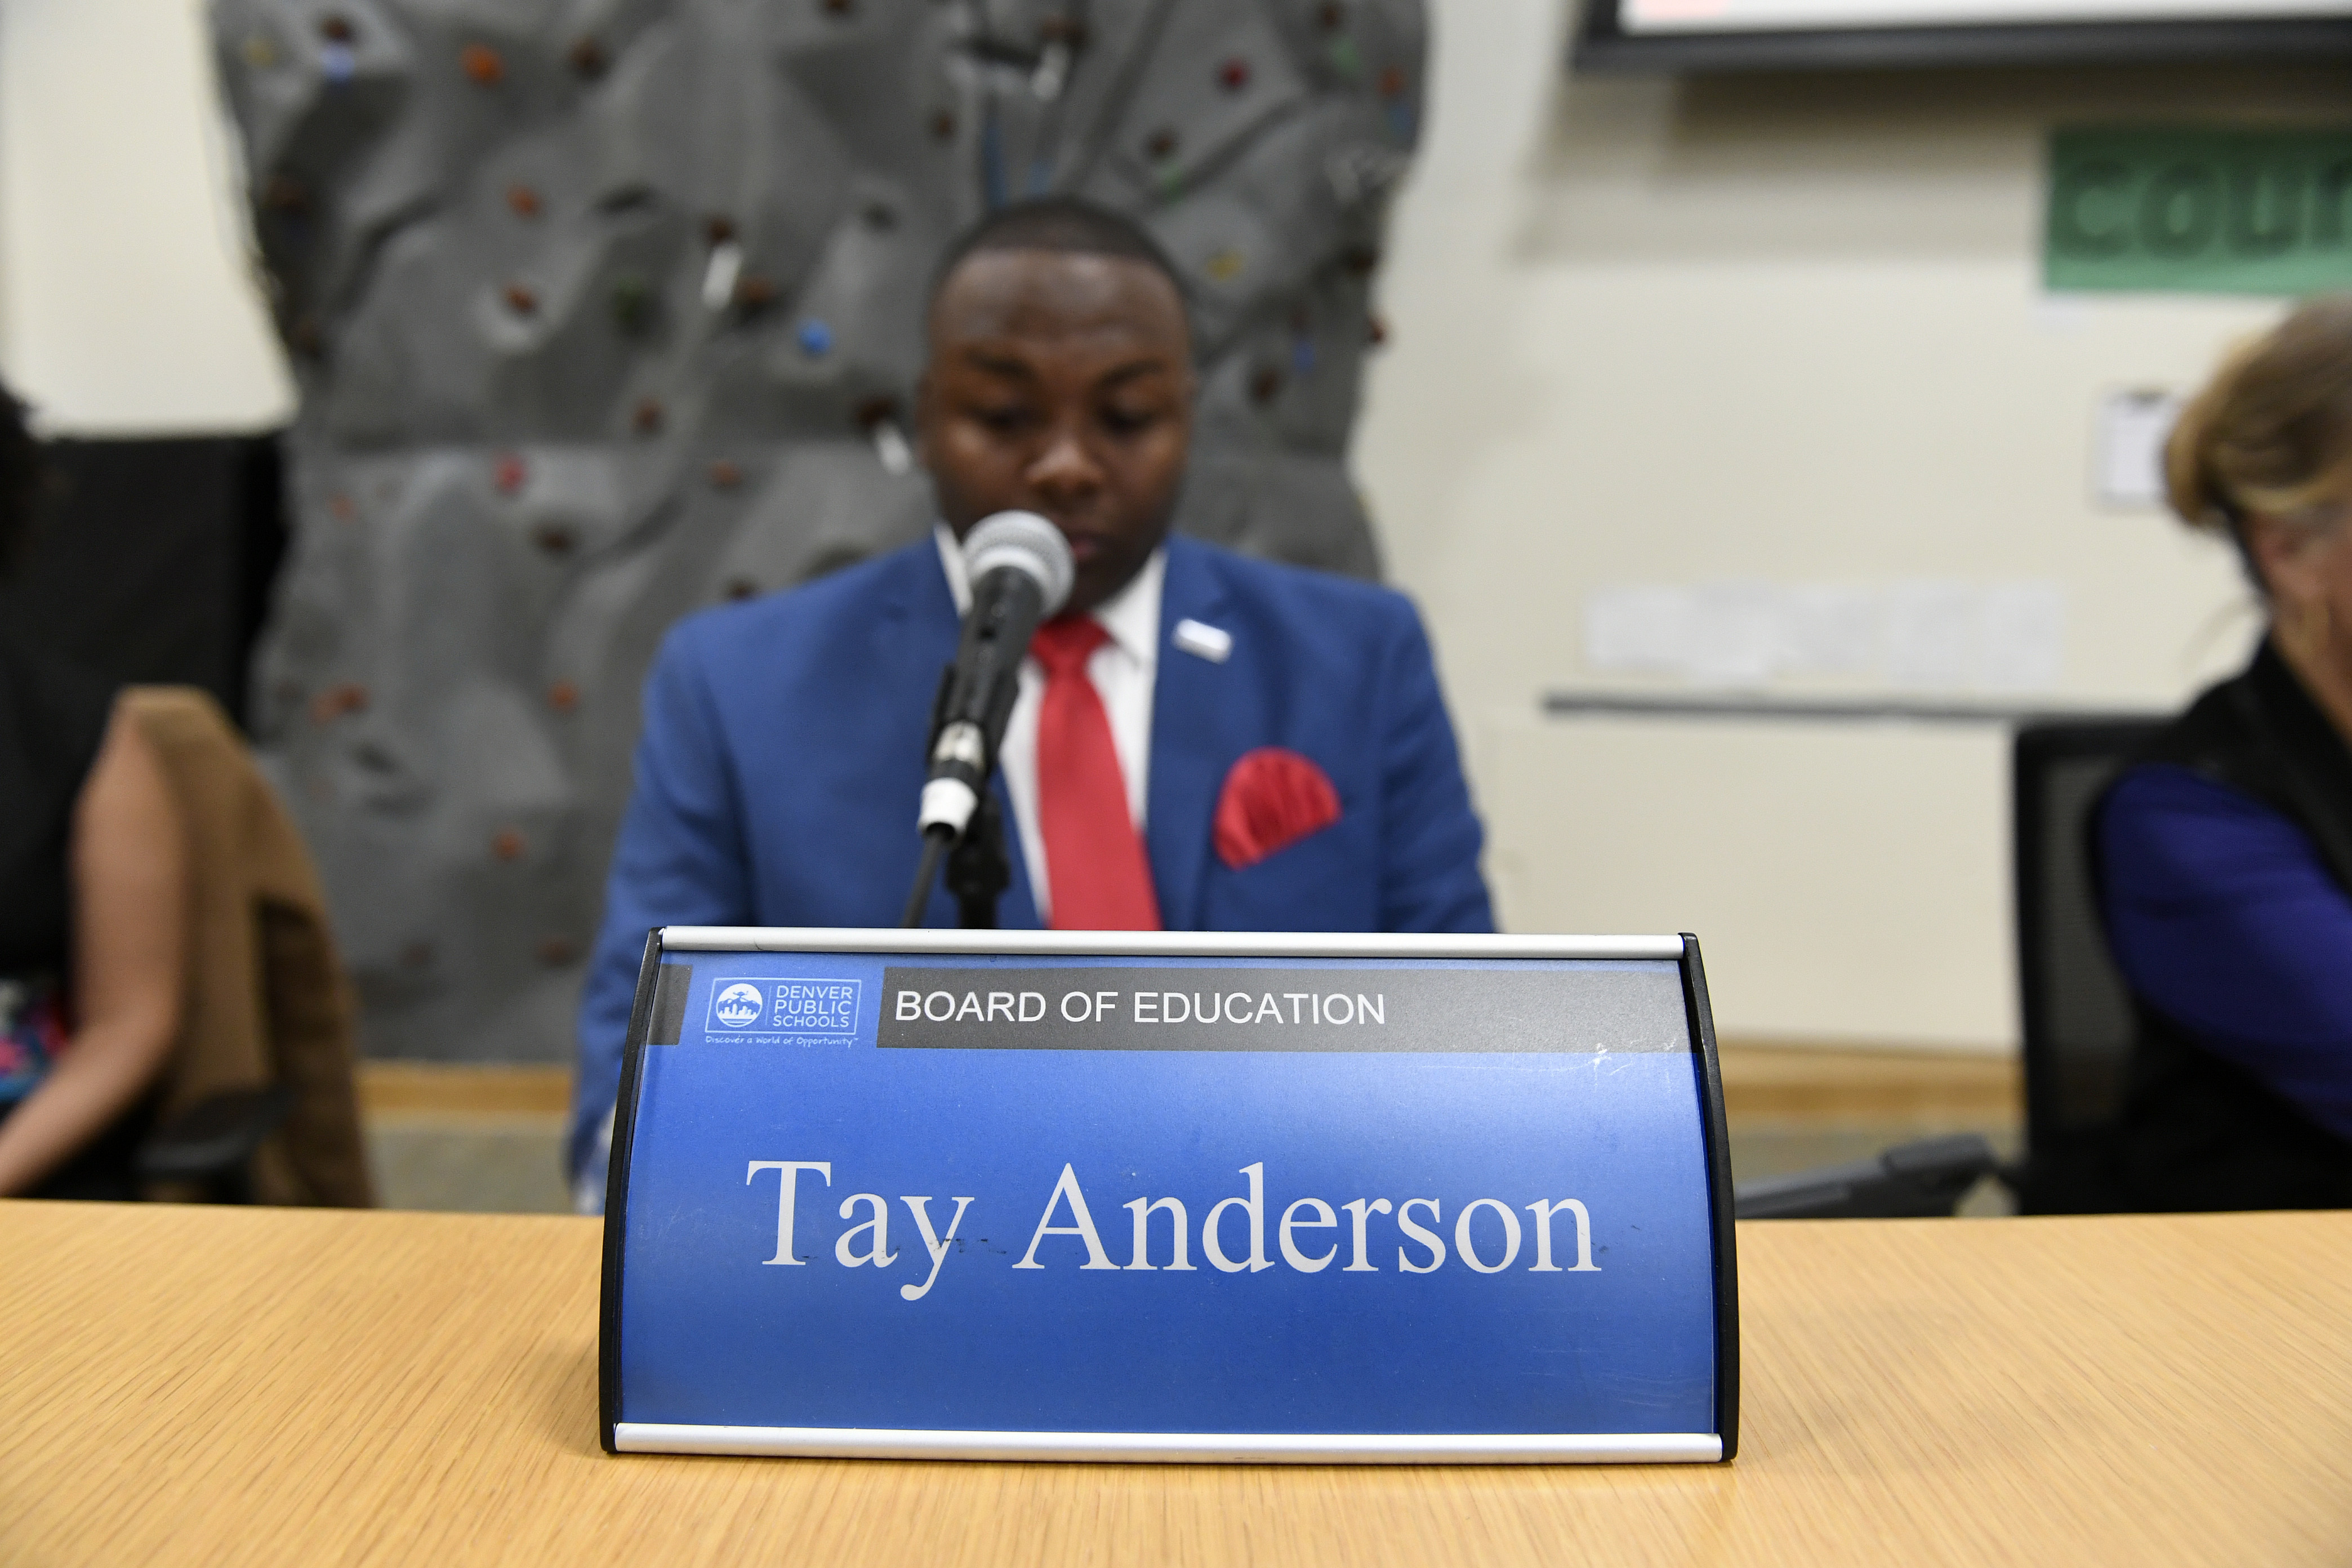 Tay Anderson, wearing a red tie and blue suit, sits behind a blue placard with his name typed in white letters.